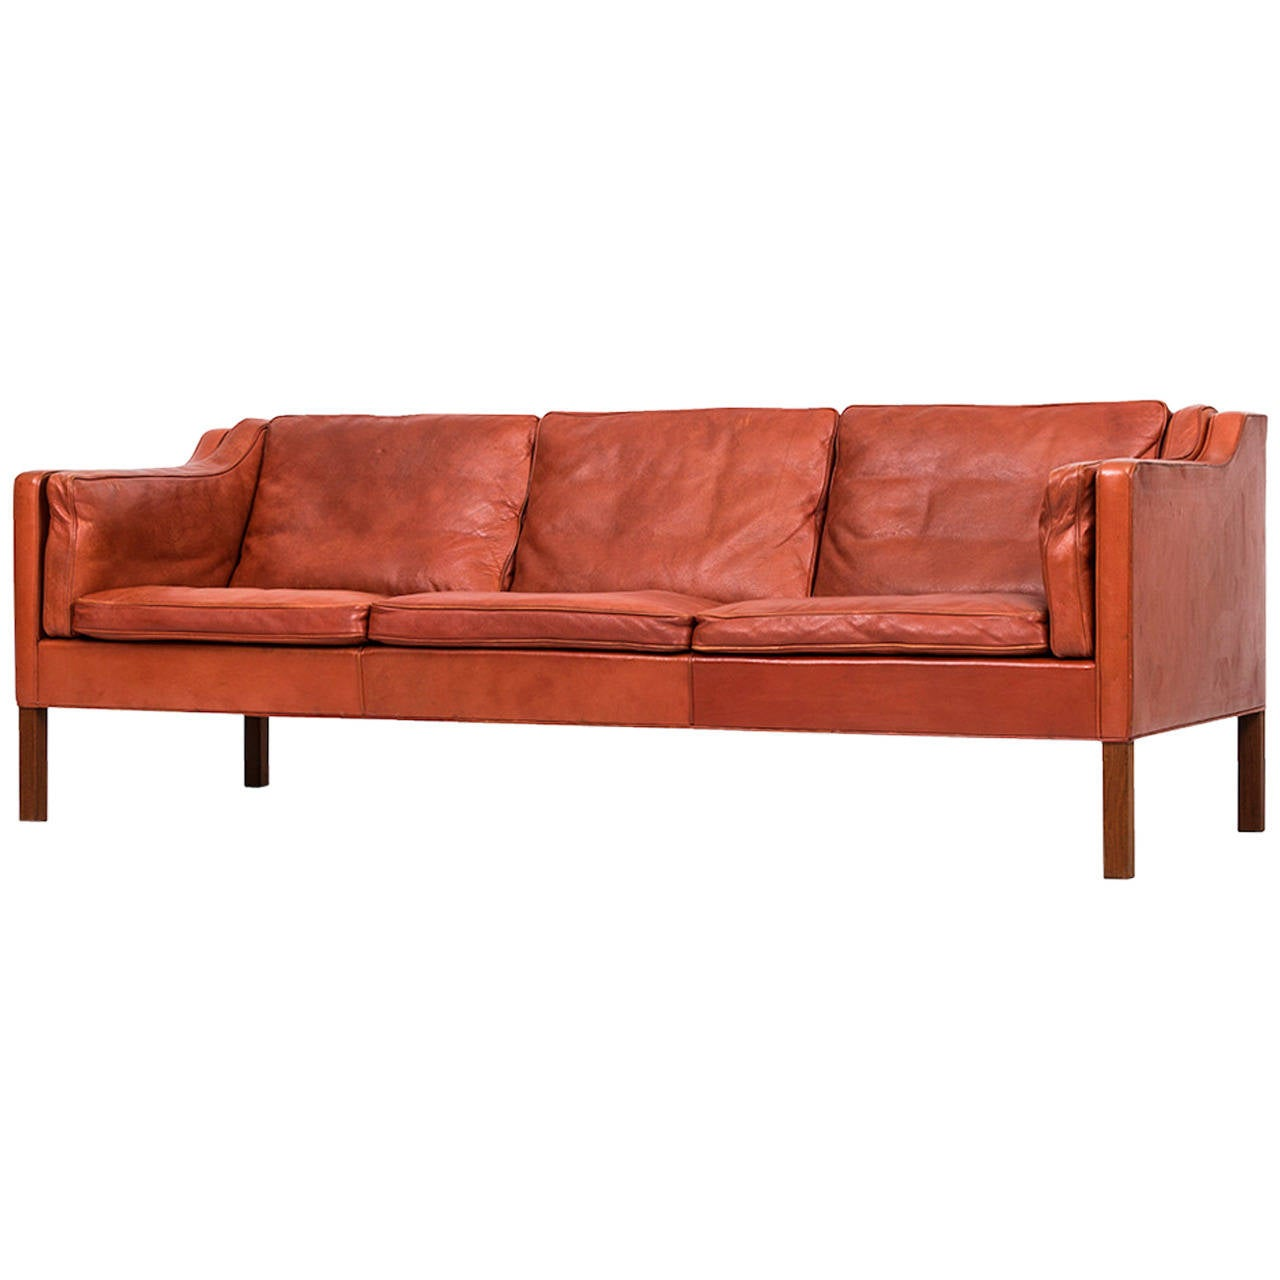 borge mogensen sofa model 2209 plastic cushion protectors børge leather 2213 by fredericia in